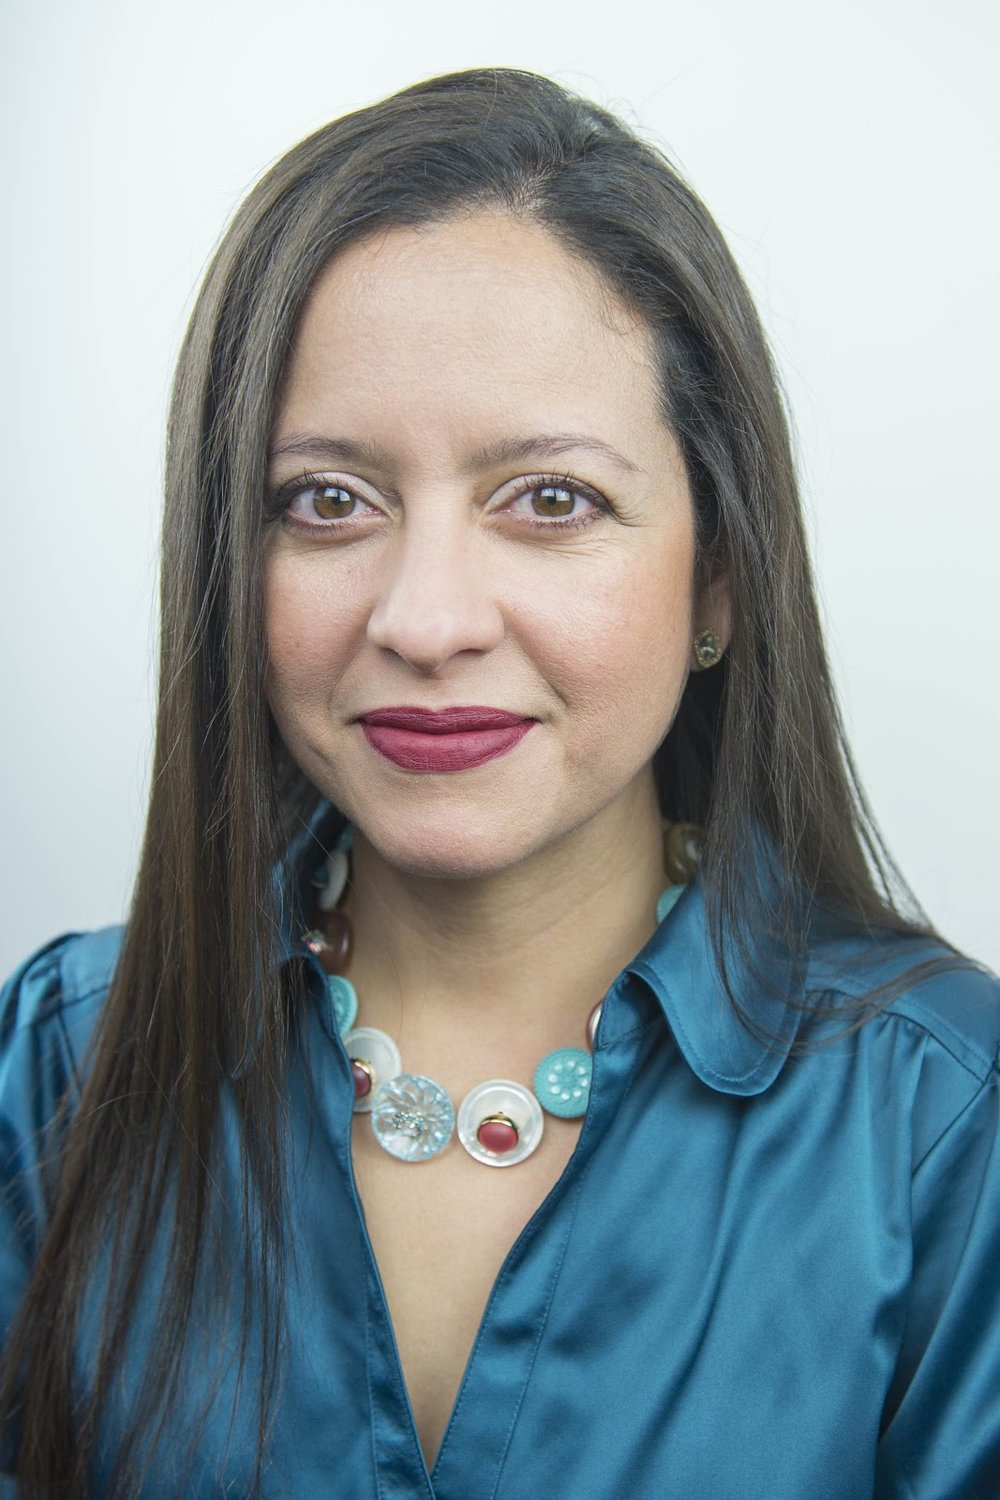 Limarys Caraballo, Ed.D   Associate Professor of Education, Queens College, CUNY